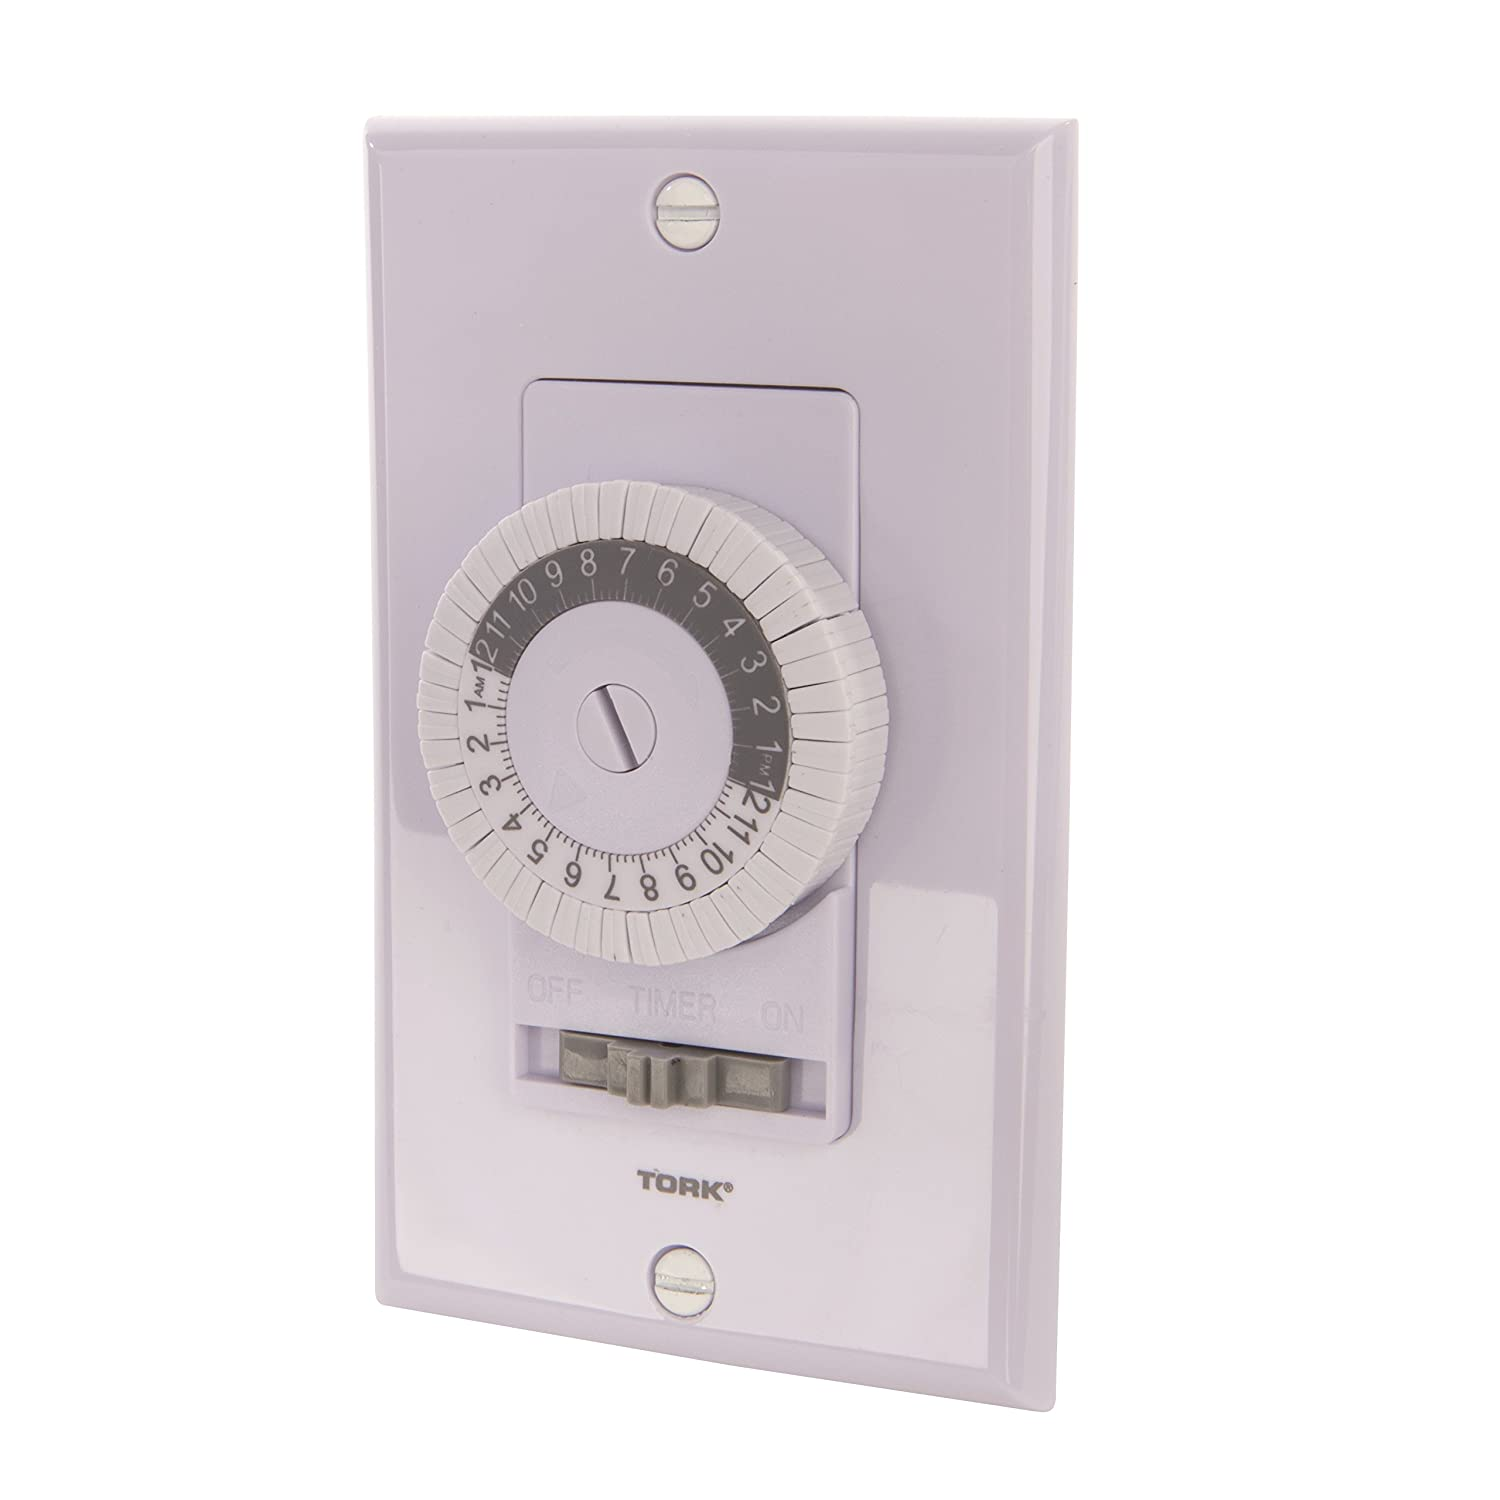 TORK 701B 24 Hour Mechanical In Wall Time Switch, 20 Amps, White - - Amazon.com